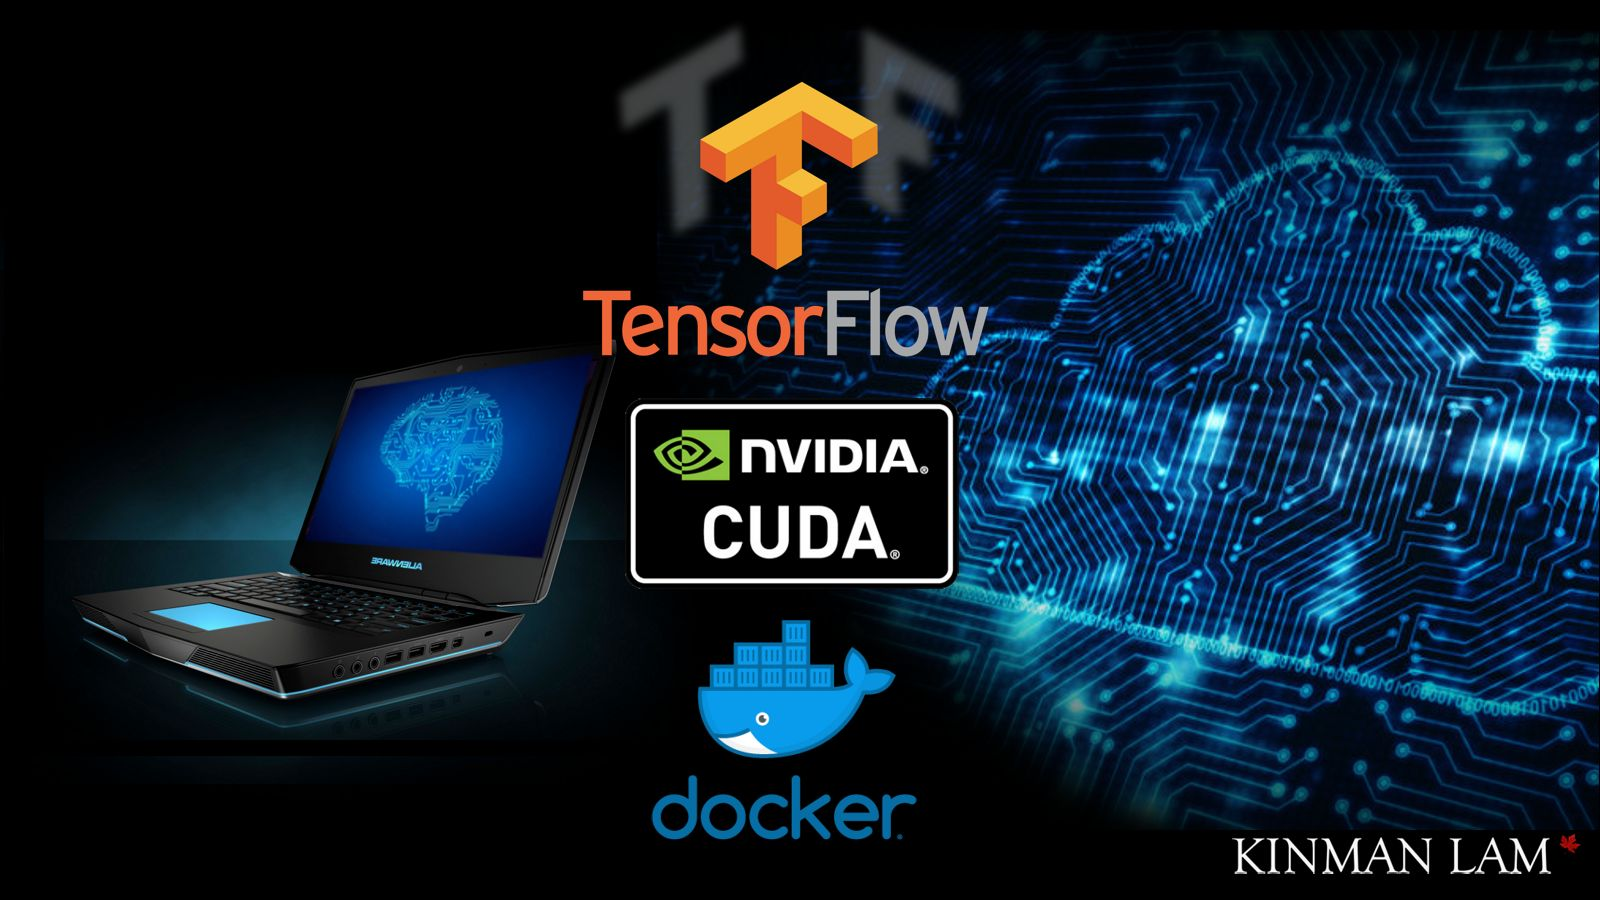 How to Setup TensorFlow GPU for accelerated Machine Learning